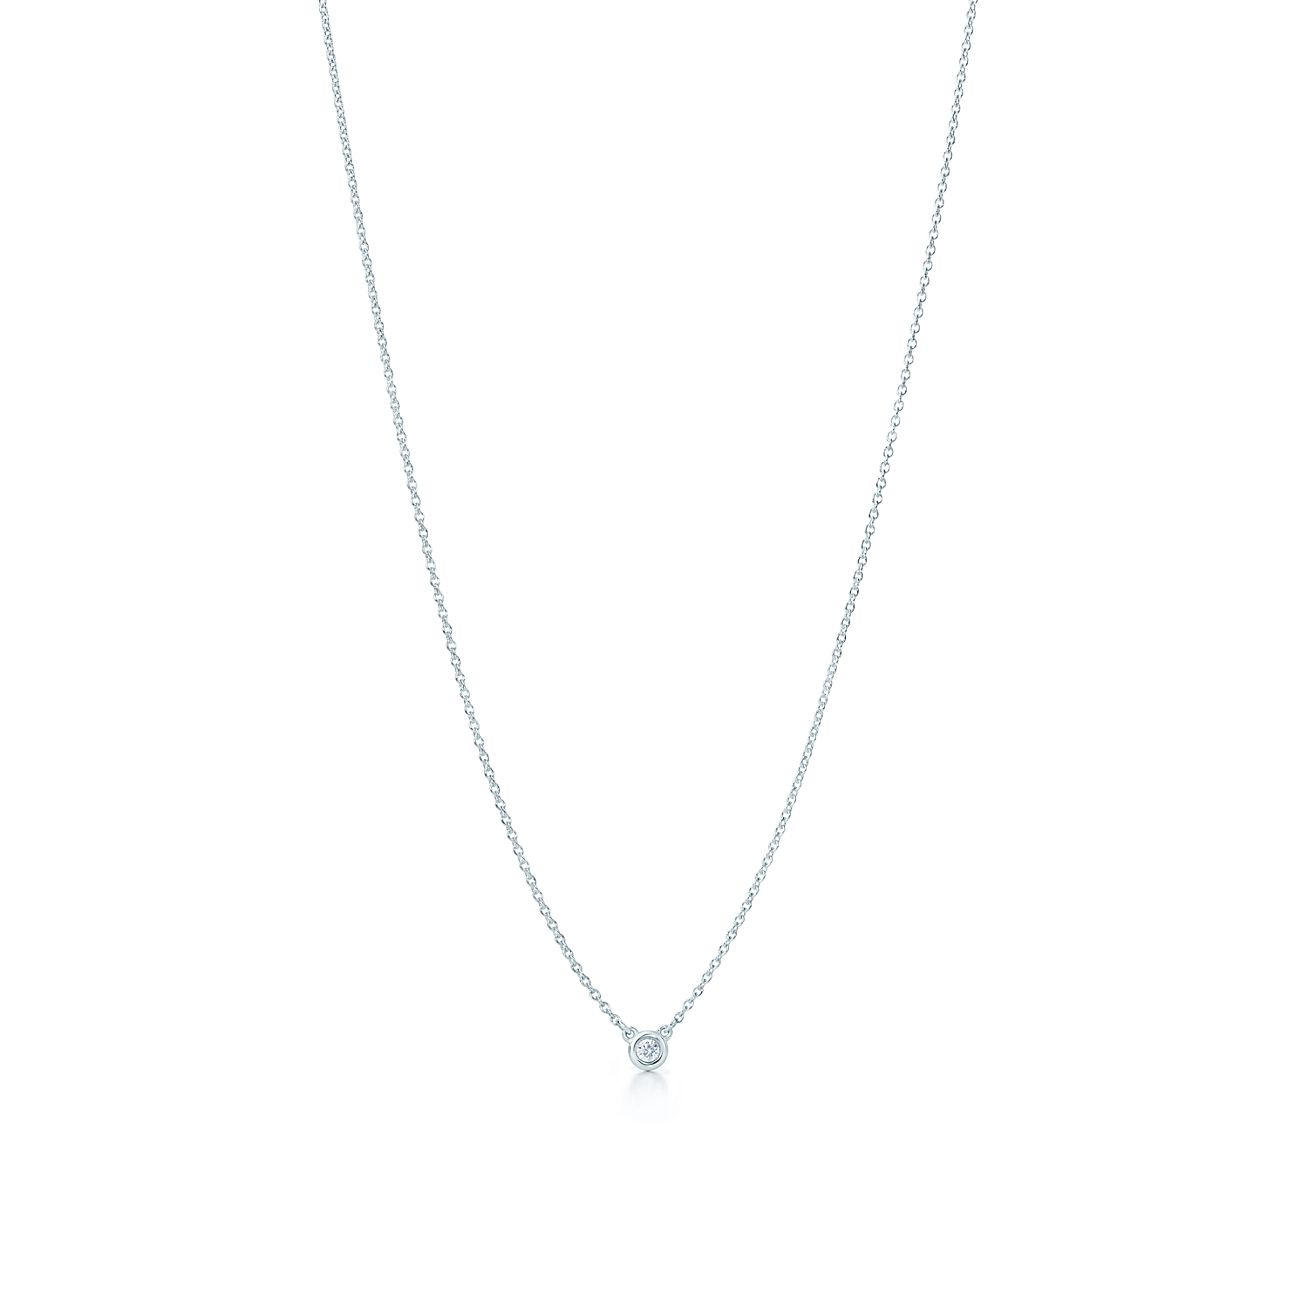 Diamond pendant necklace in sterling silver elsa peretti elsa perettidiamonds by the yard pendant aloadofball Image collections